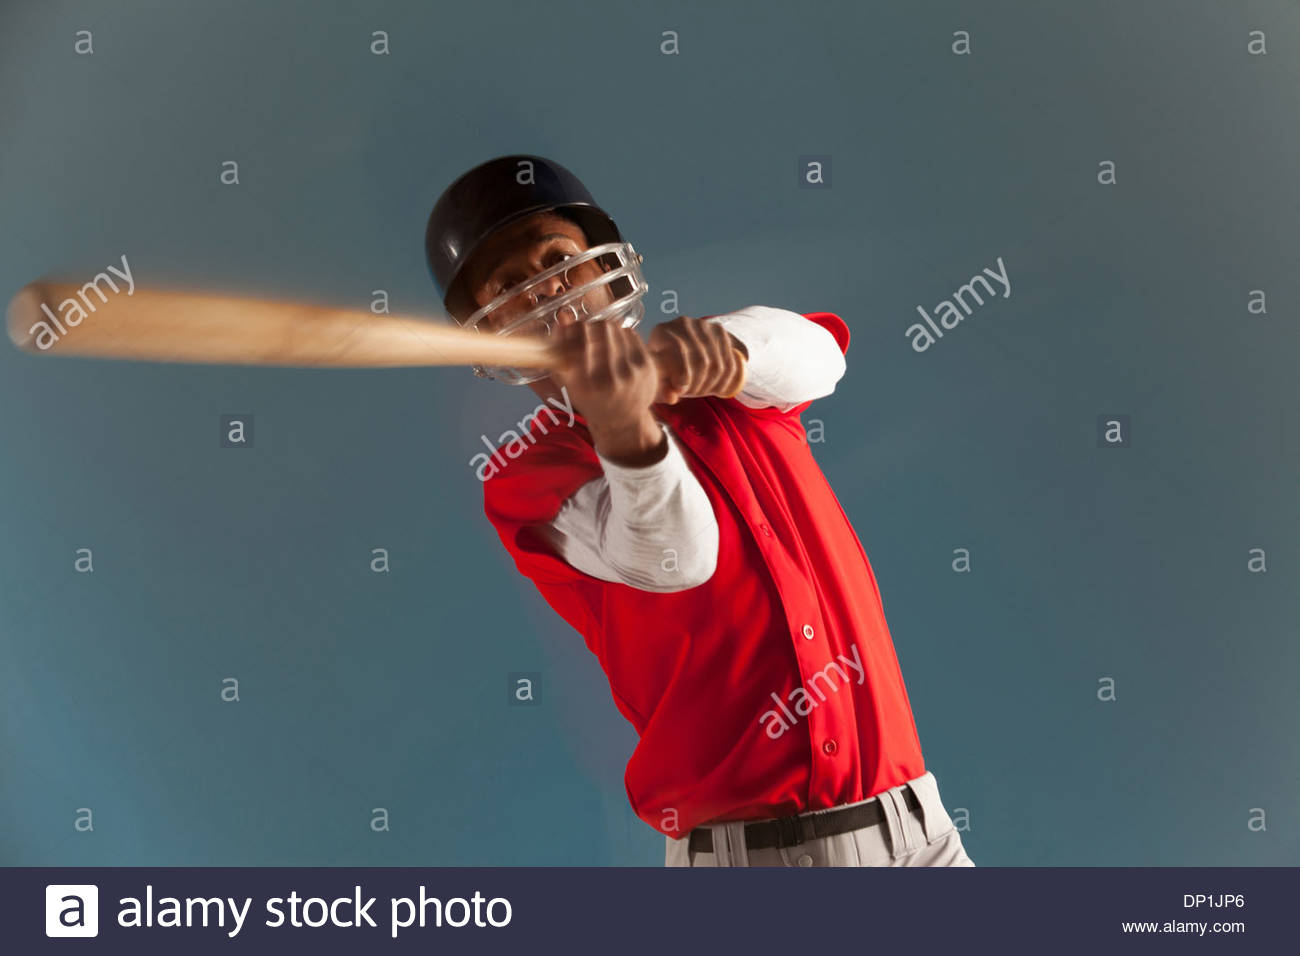 Blurred view of baseball player swinging bat Photo Stock